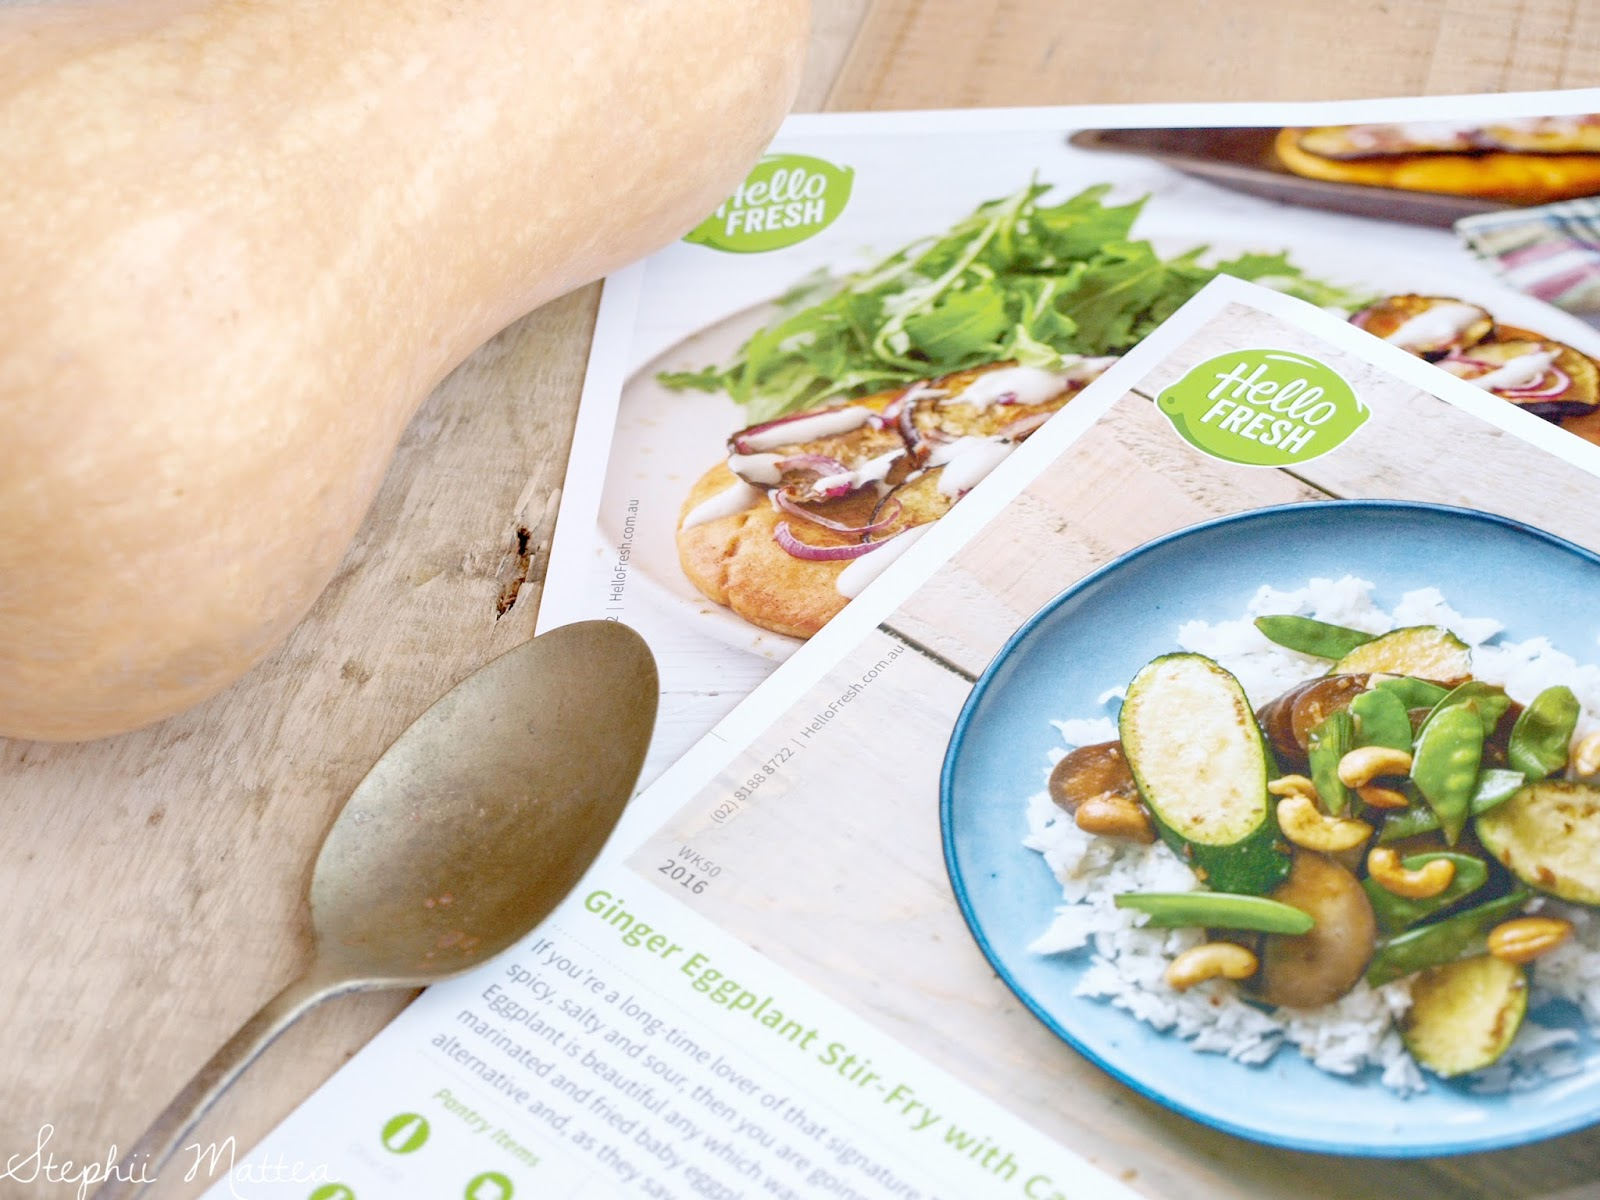 Hellofresh Meal Kit Delivery Service  Buyback Offer 2020